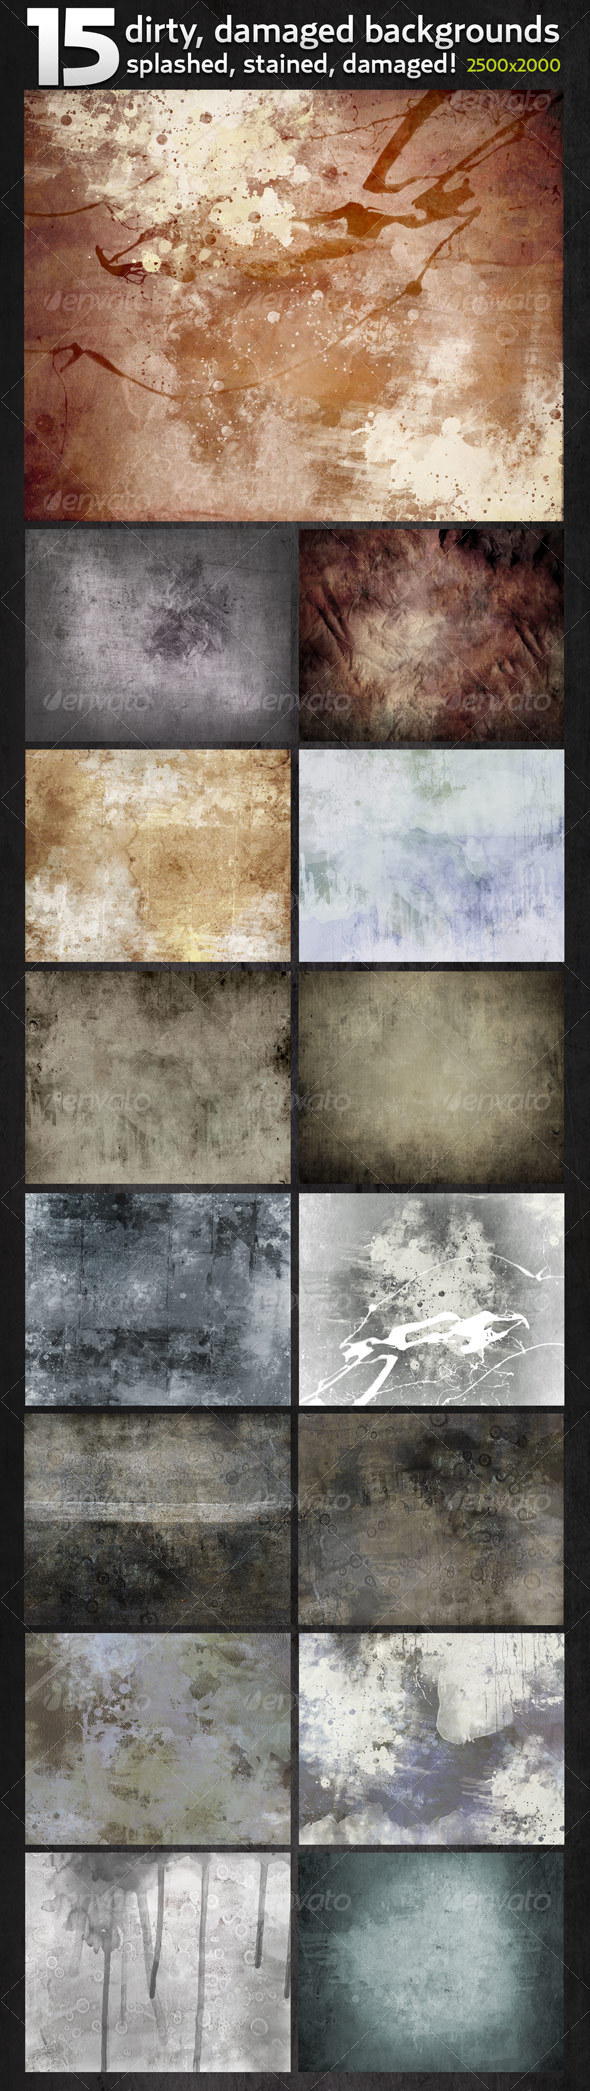 15 Hi-res Dirty, Damaged Backgrounds in 2500x2000 - Industrial / Grunge Textures